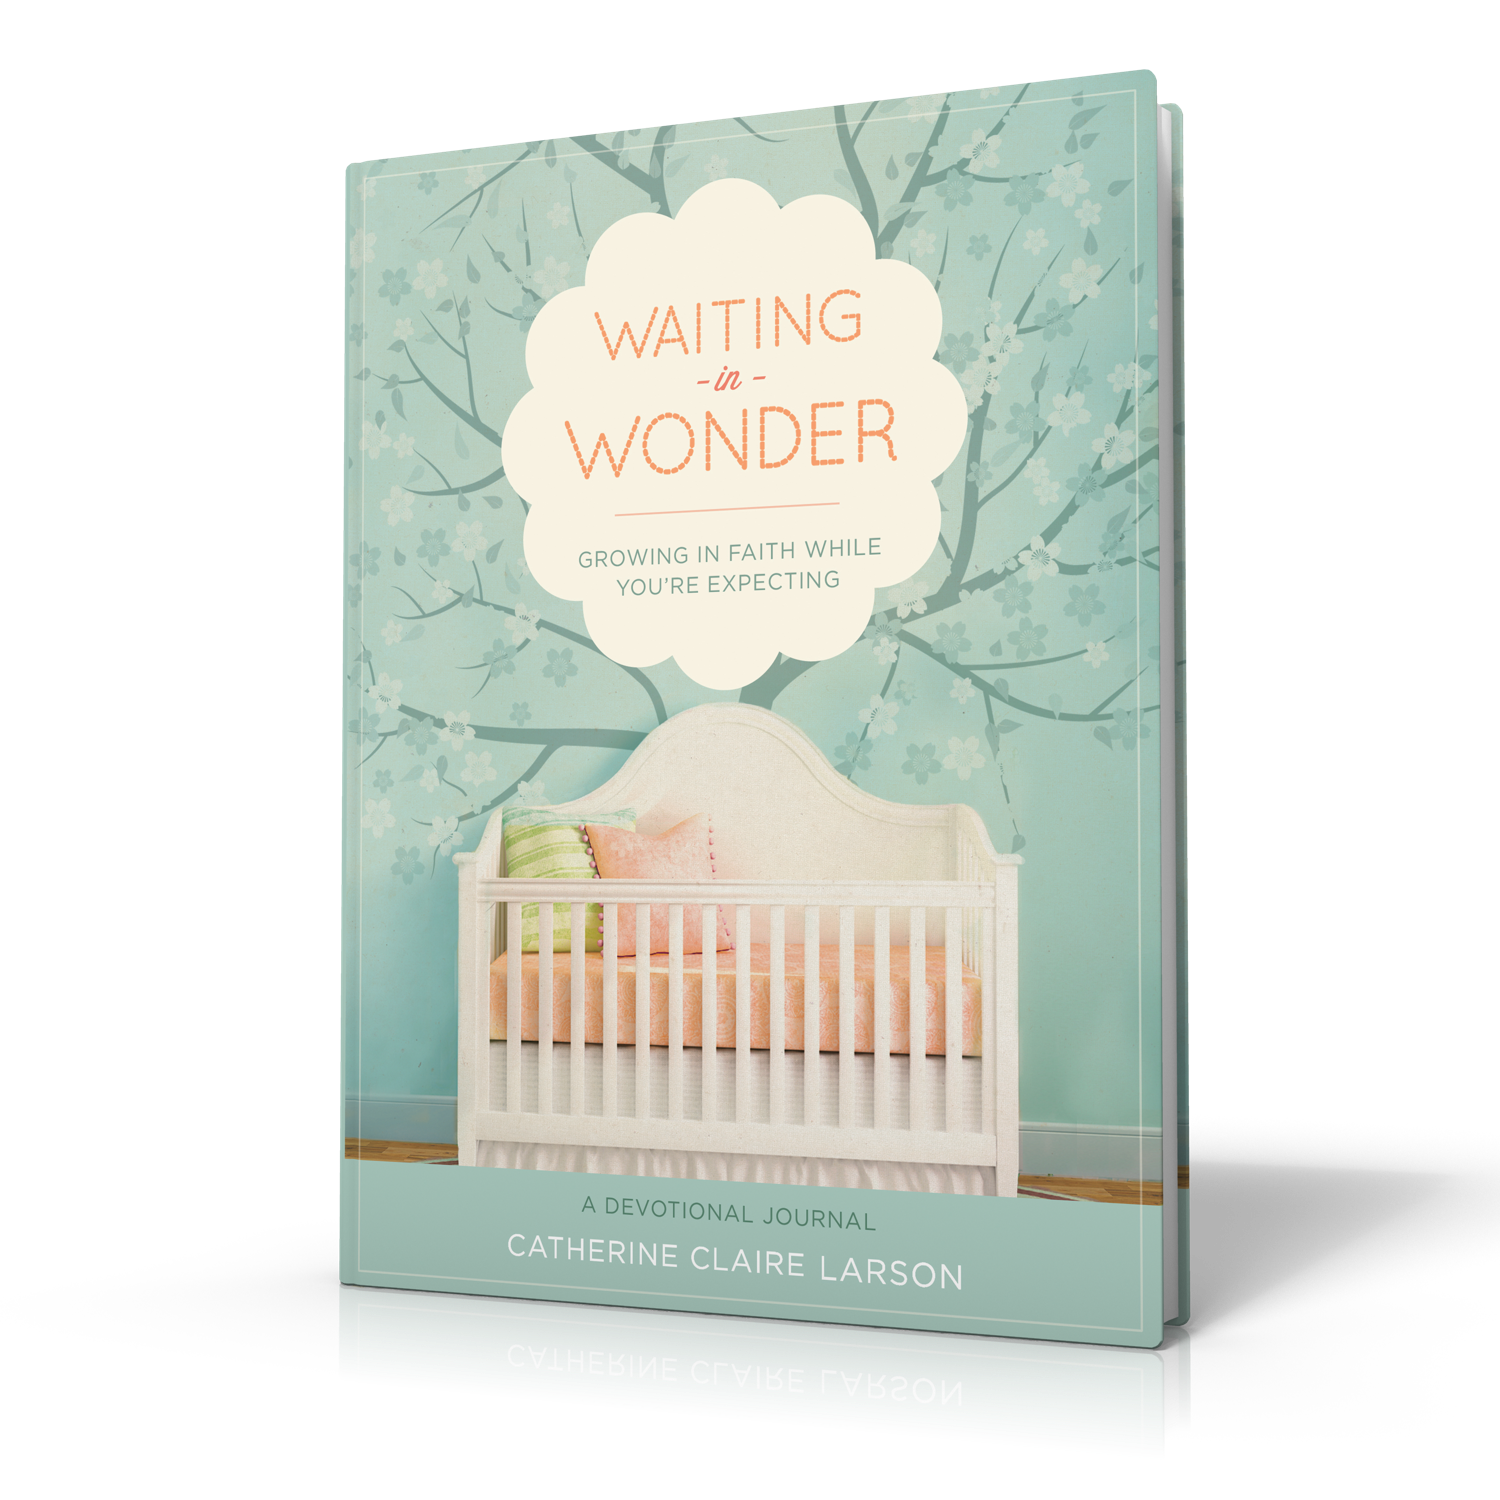 WaitingWonder